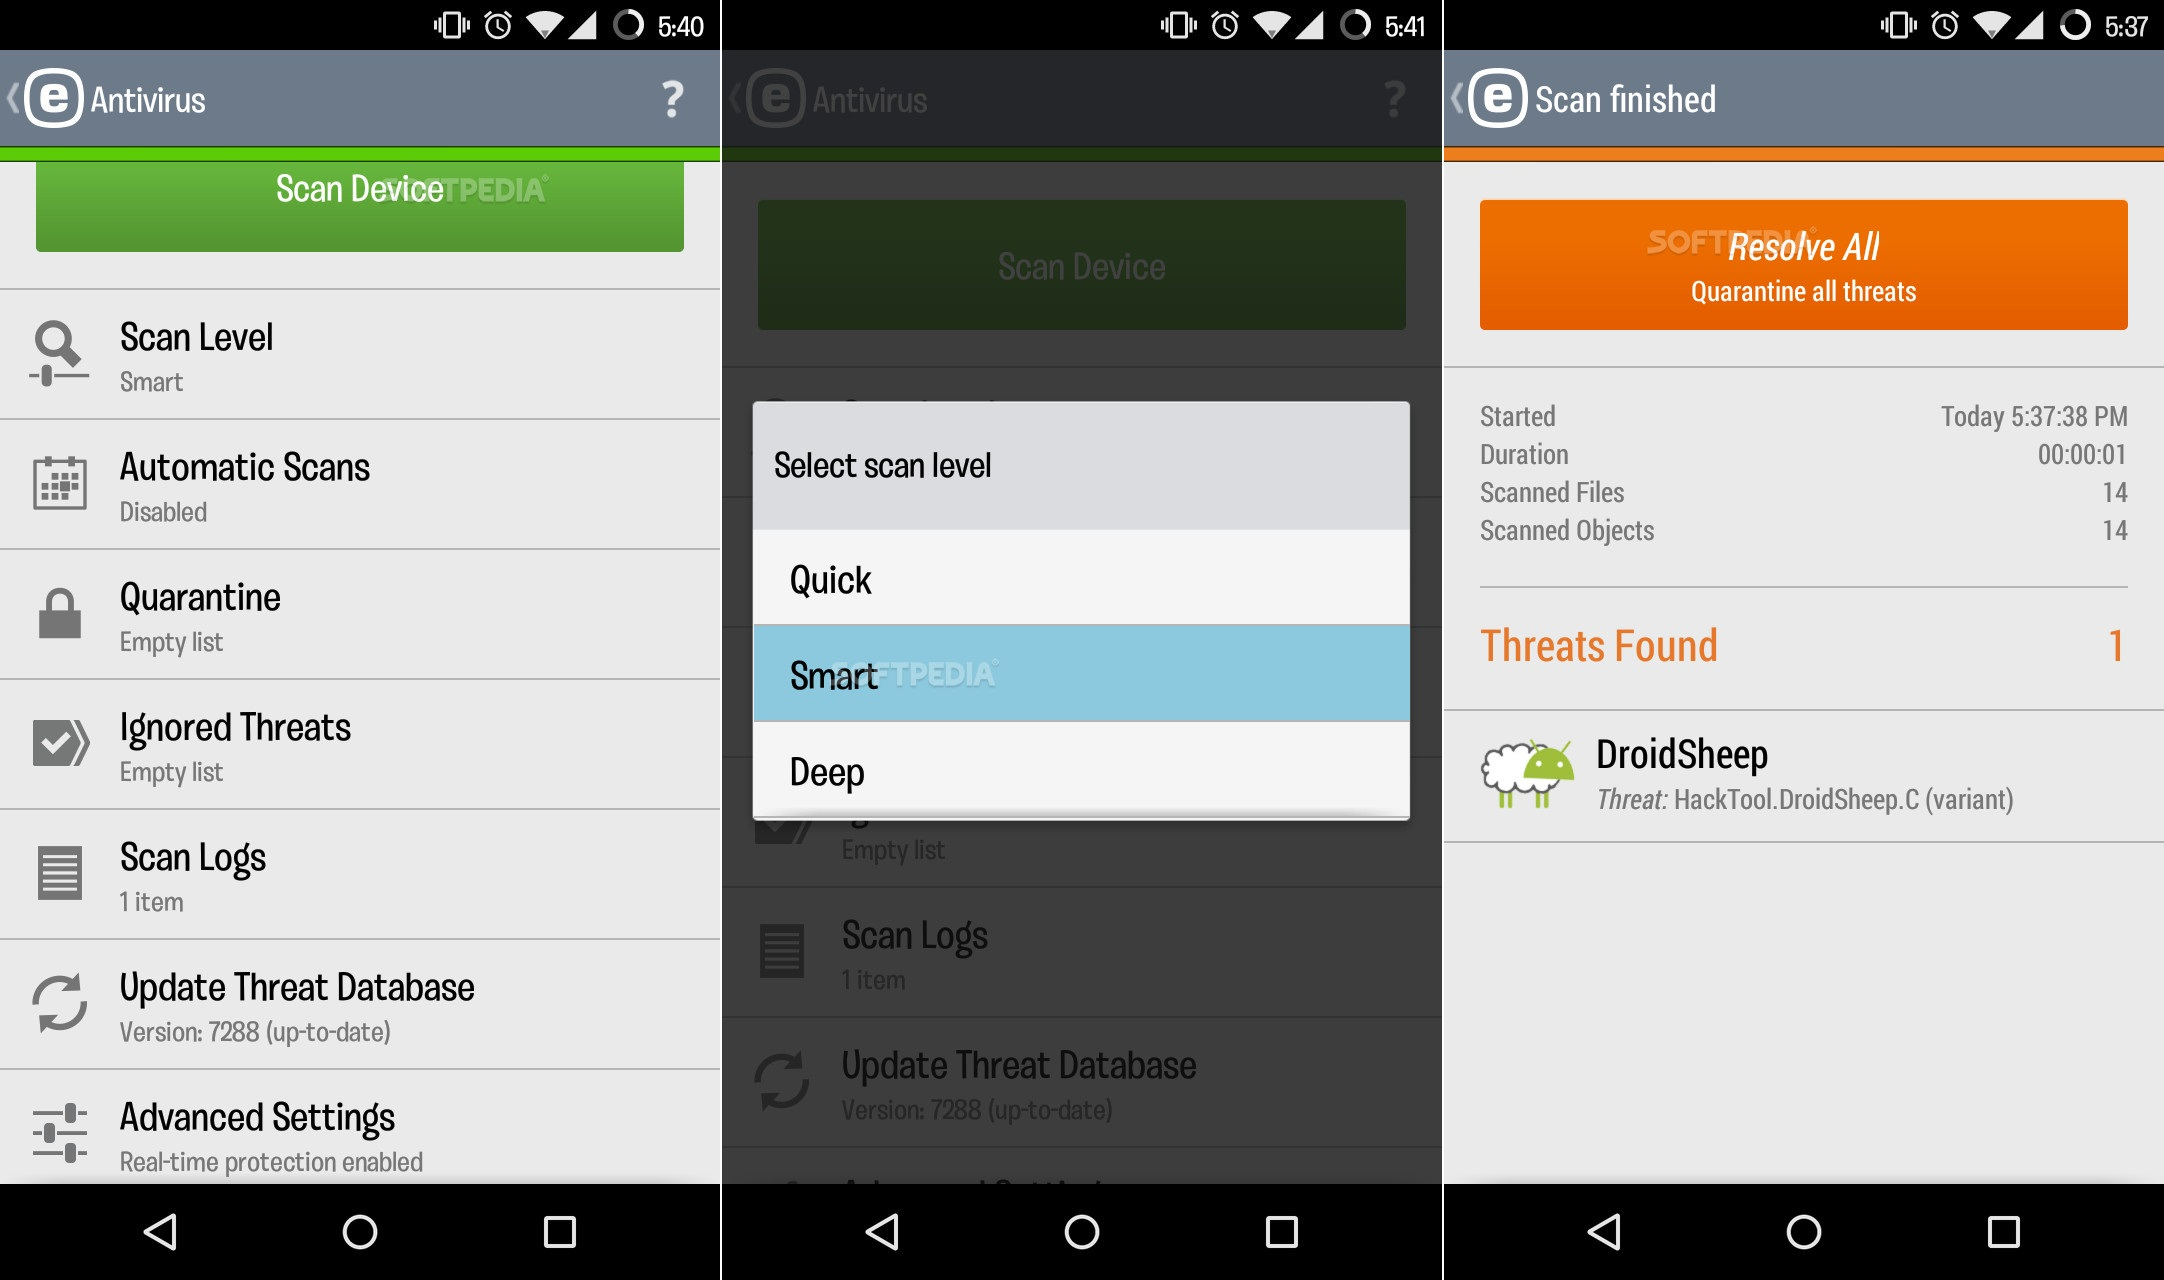 ESET Mobile Security & Antivirus Explained: Usage, Video and